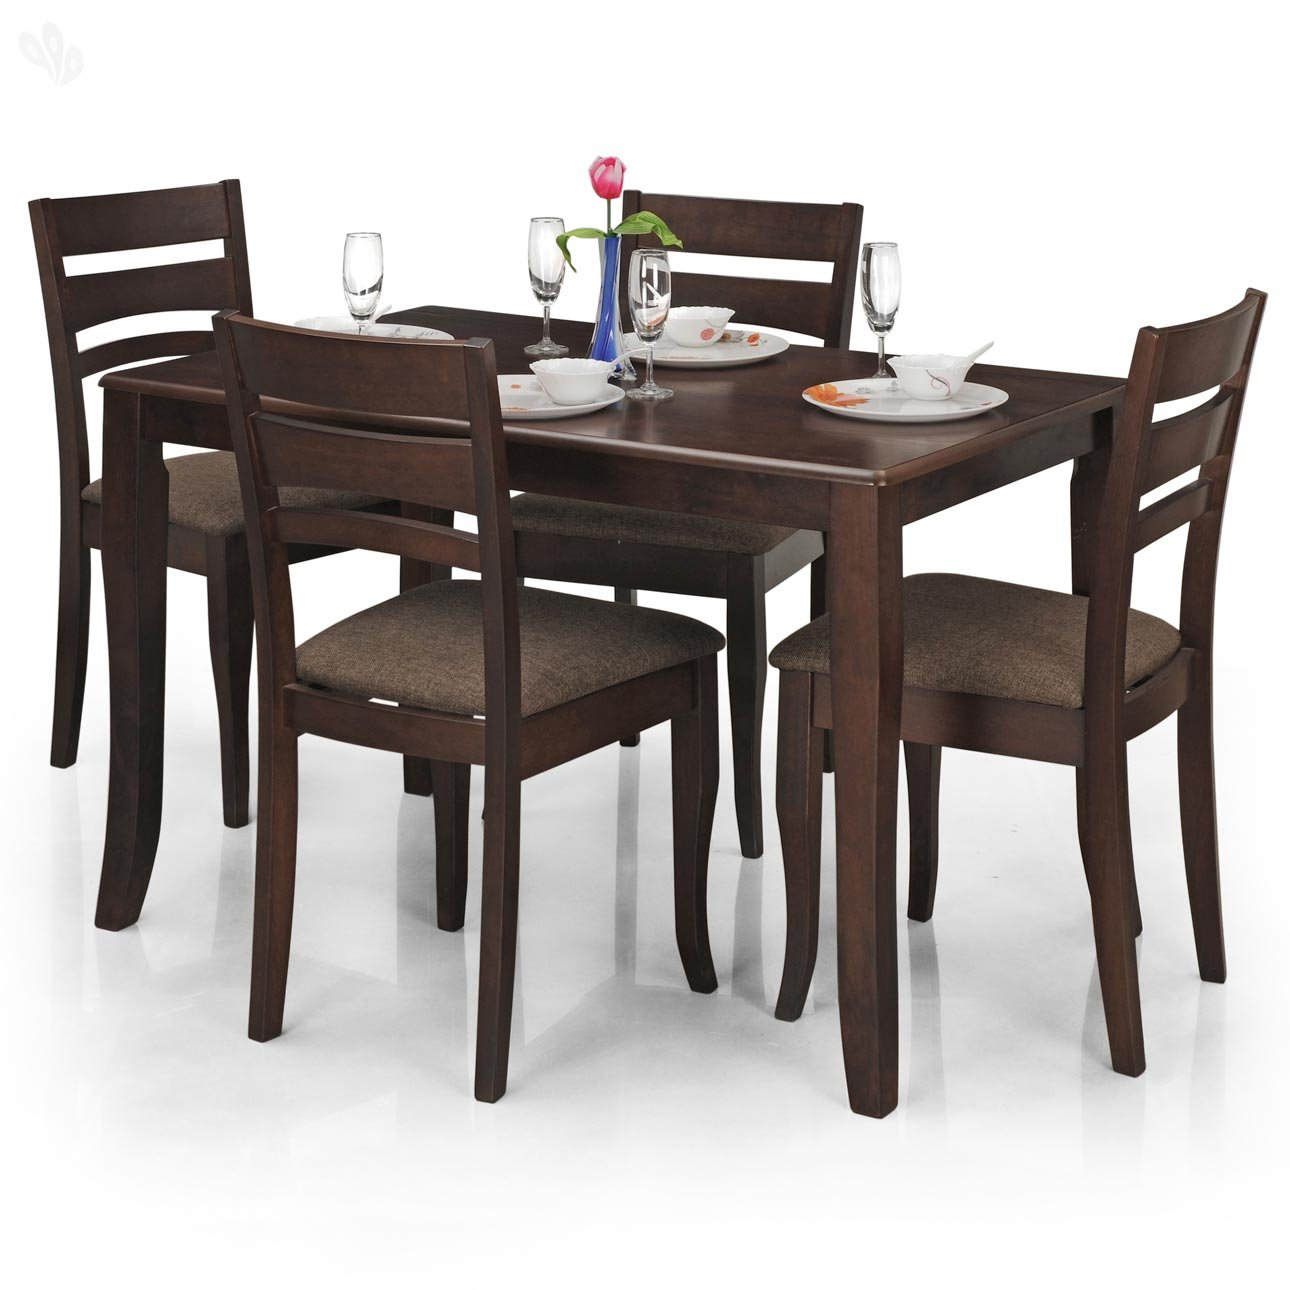 Tables and chairs price list for 4 dining room table